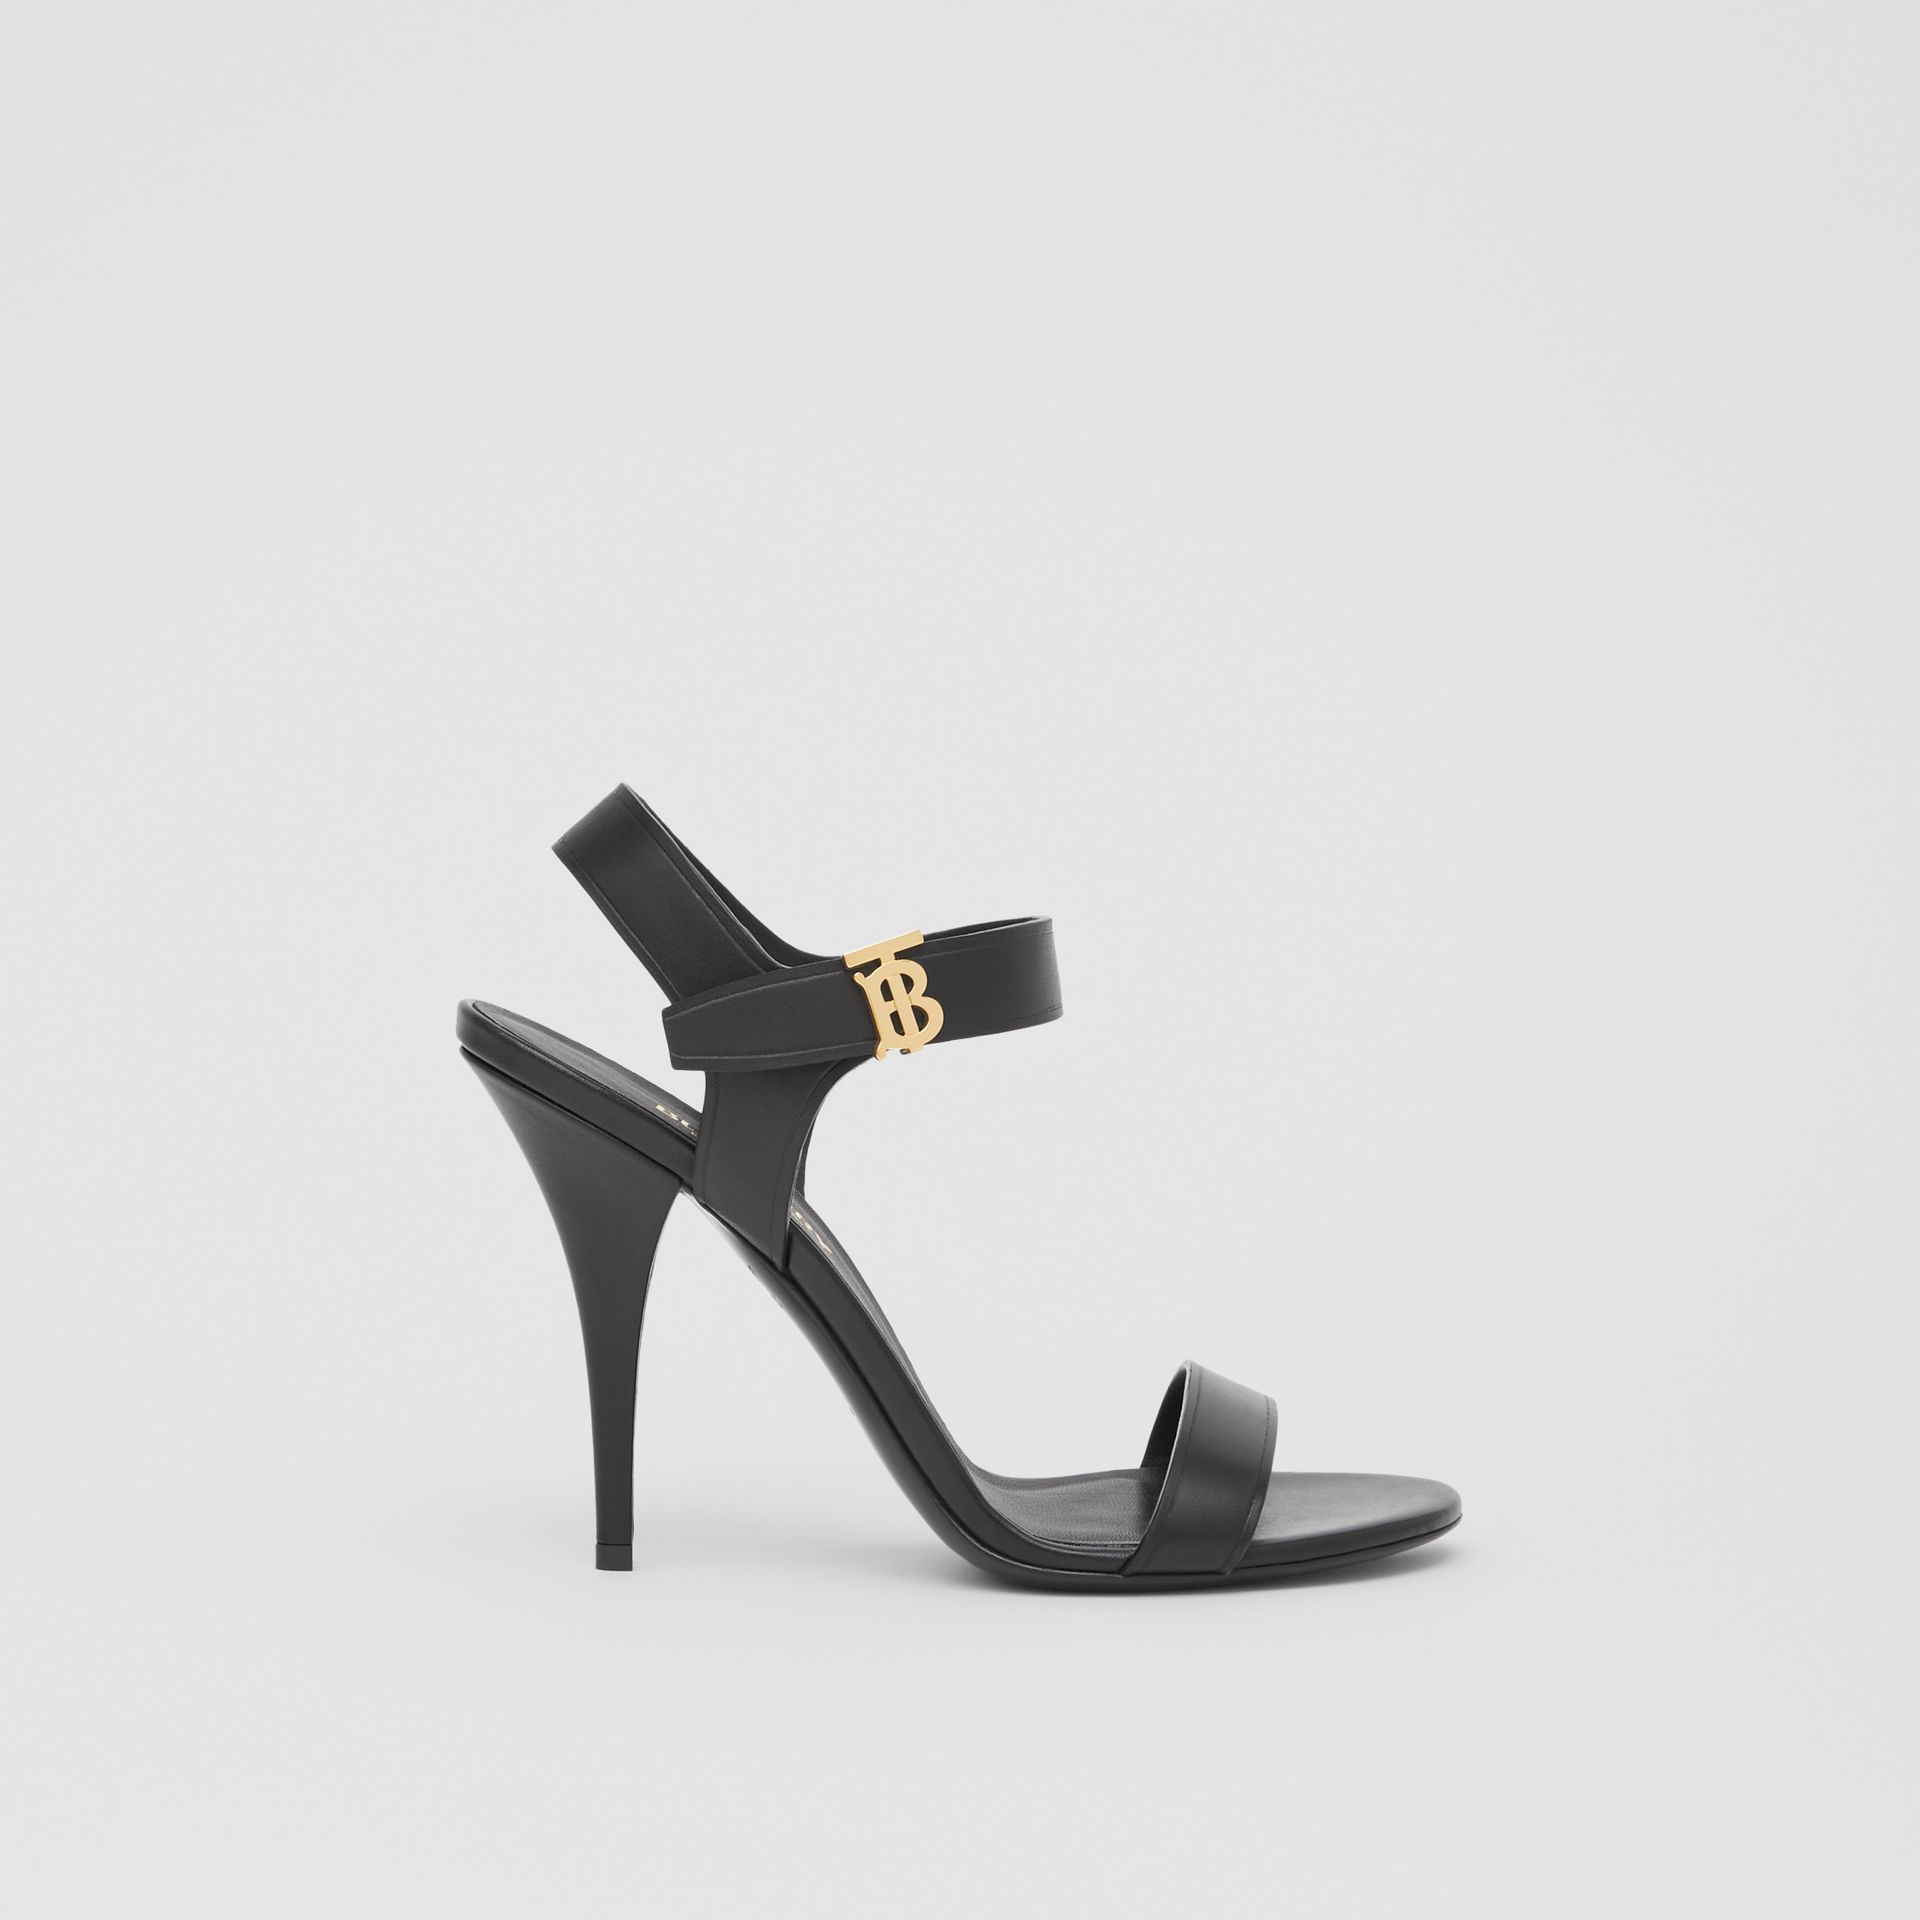 Monogram Motif Leather Sandals in Black - Women | Burberry United Kingdom - gallery image 5